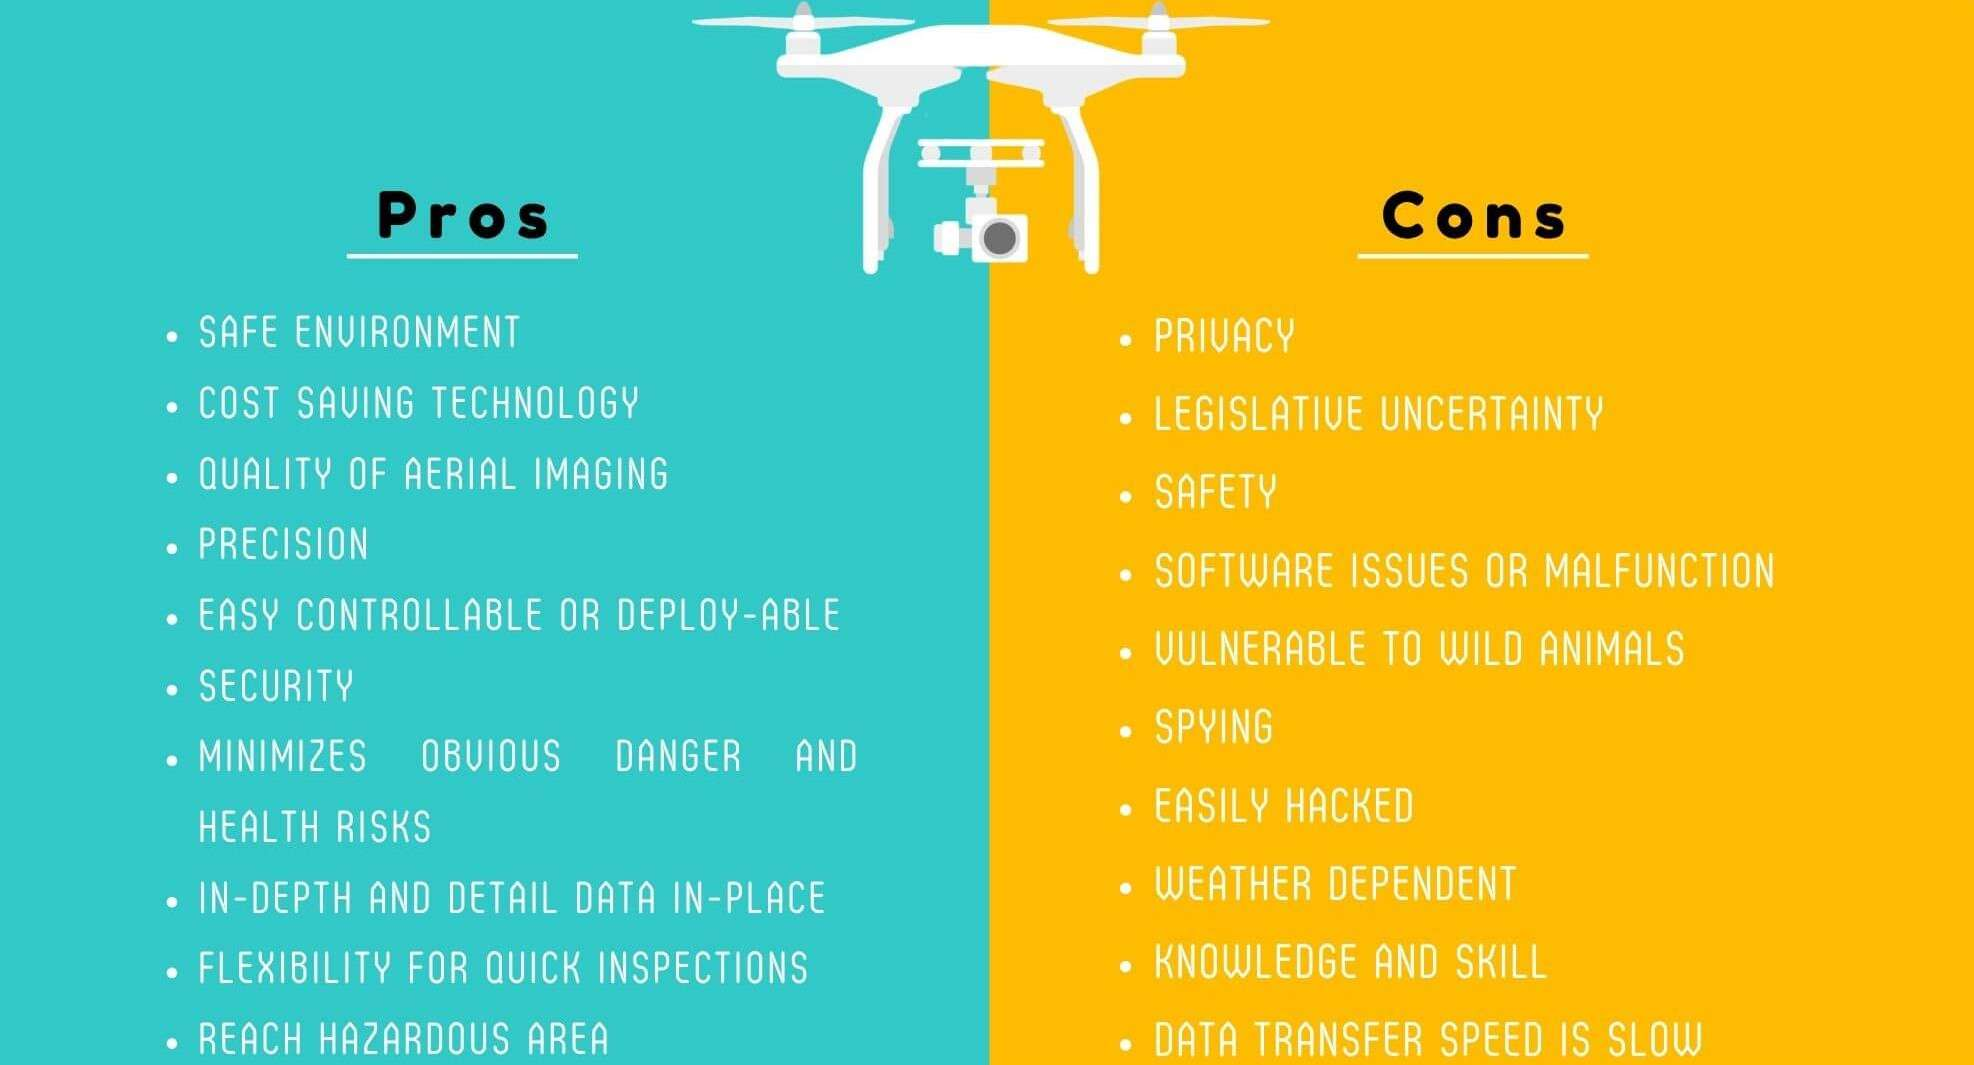 10 major pros and cons of unmanned aerial vehicles | drone service providers in India